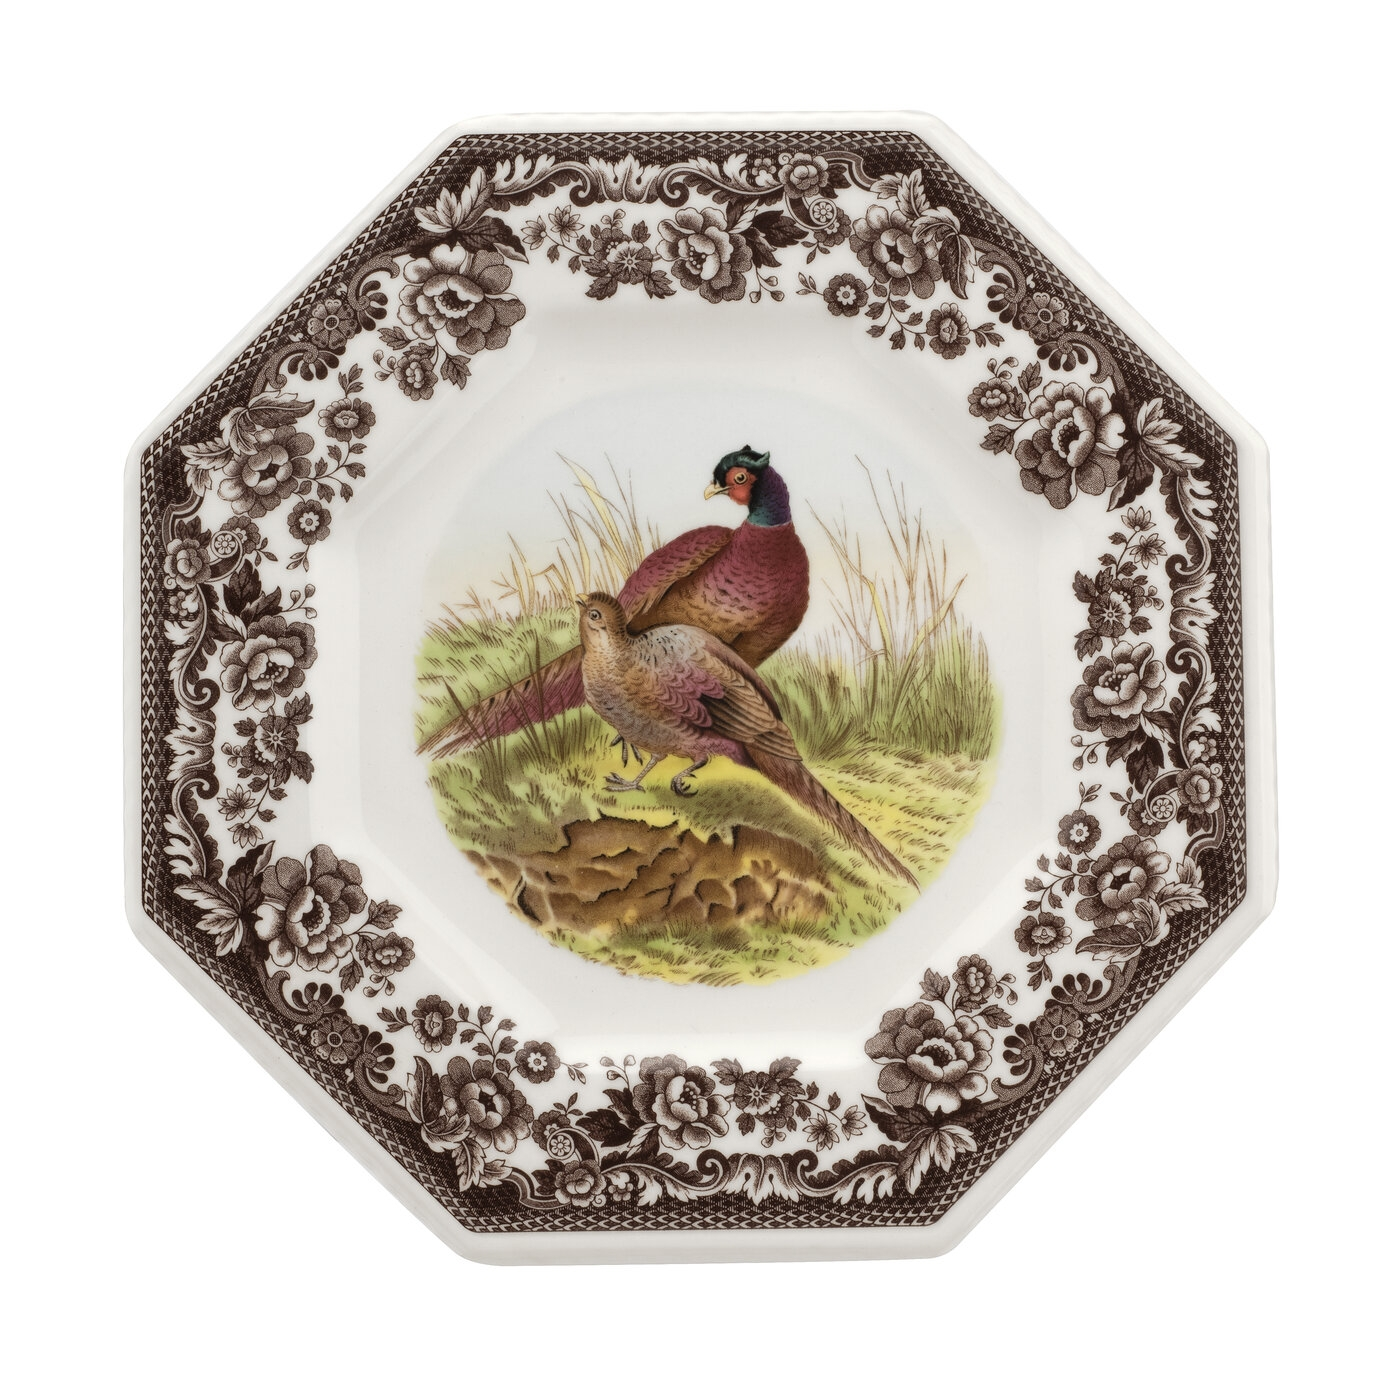 Spode Woodland Octagonal Plate 9.5 Inch (Pheasant) image number 0